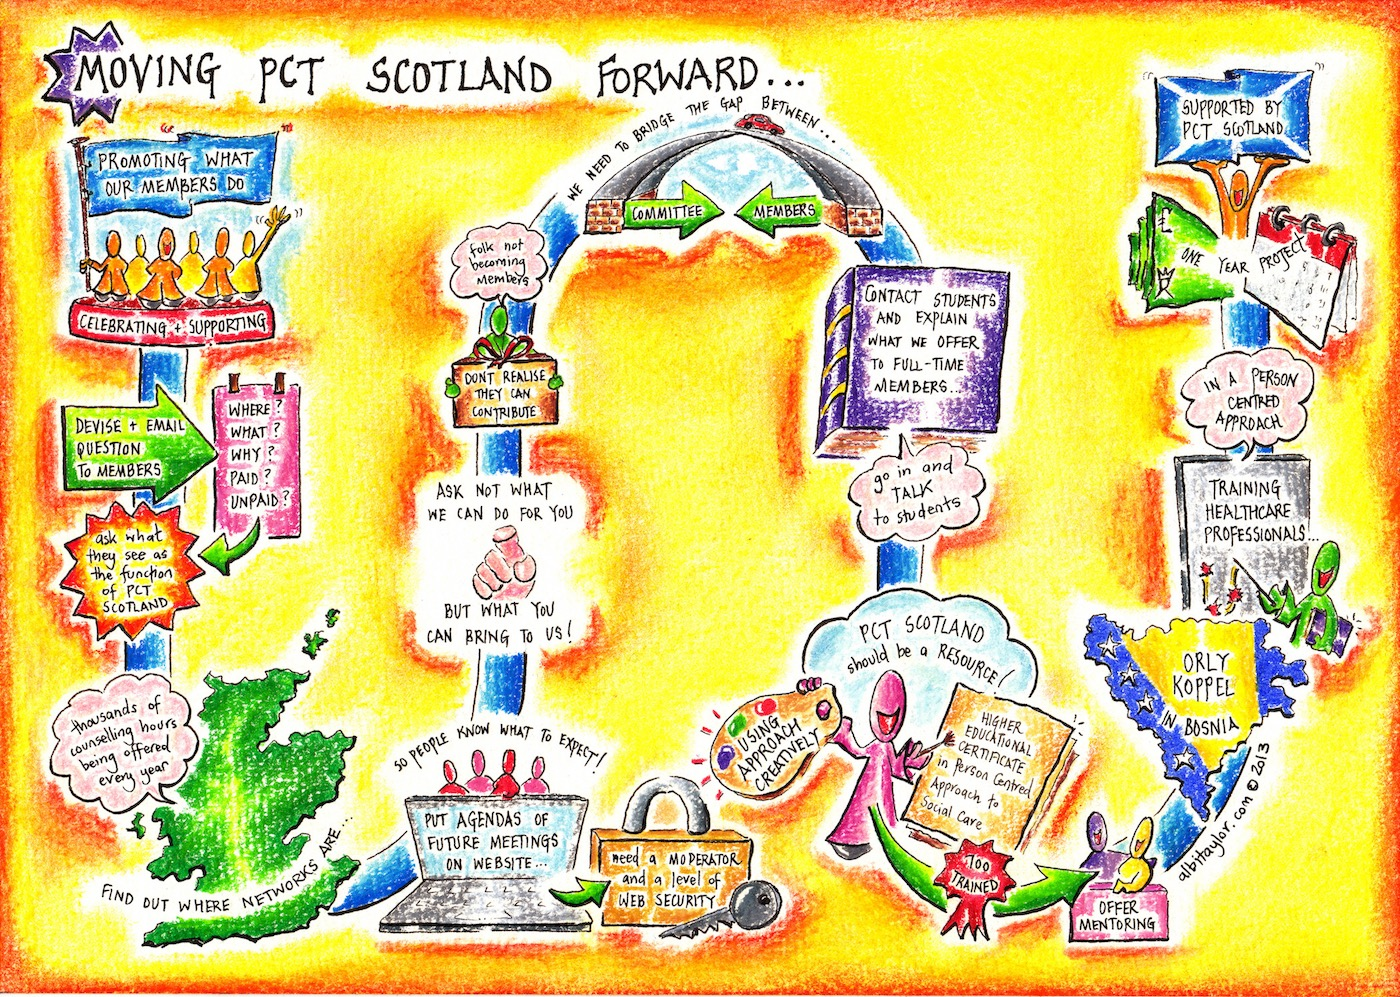 Moving PCT Scotland Forward